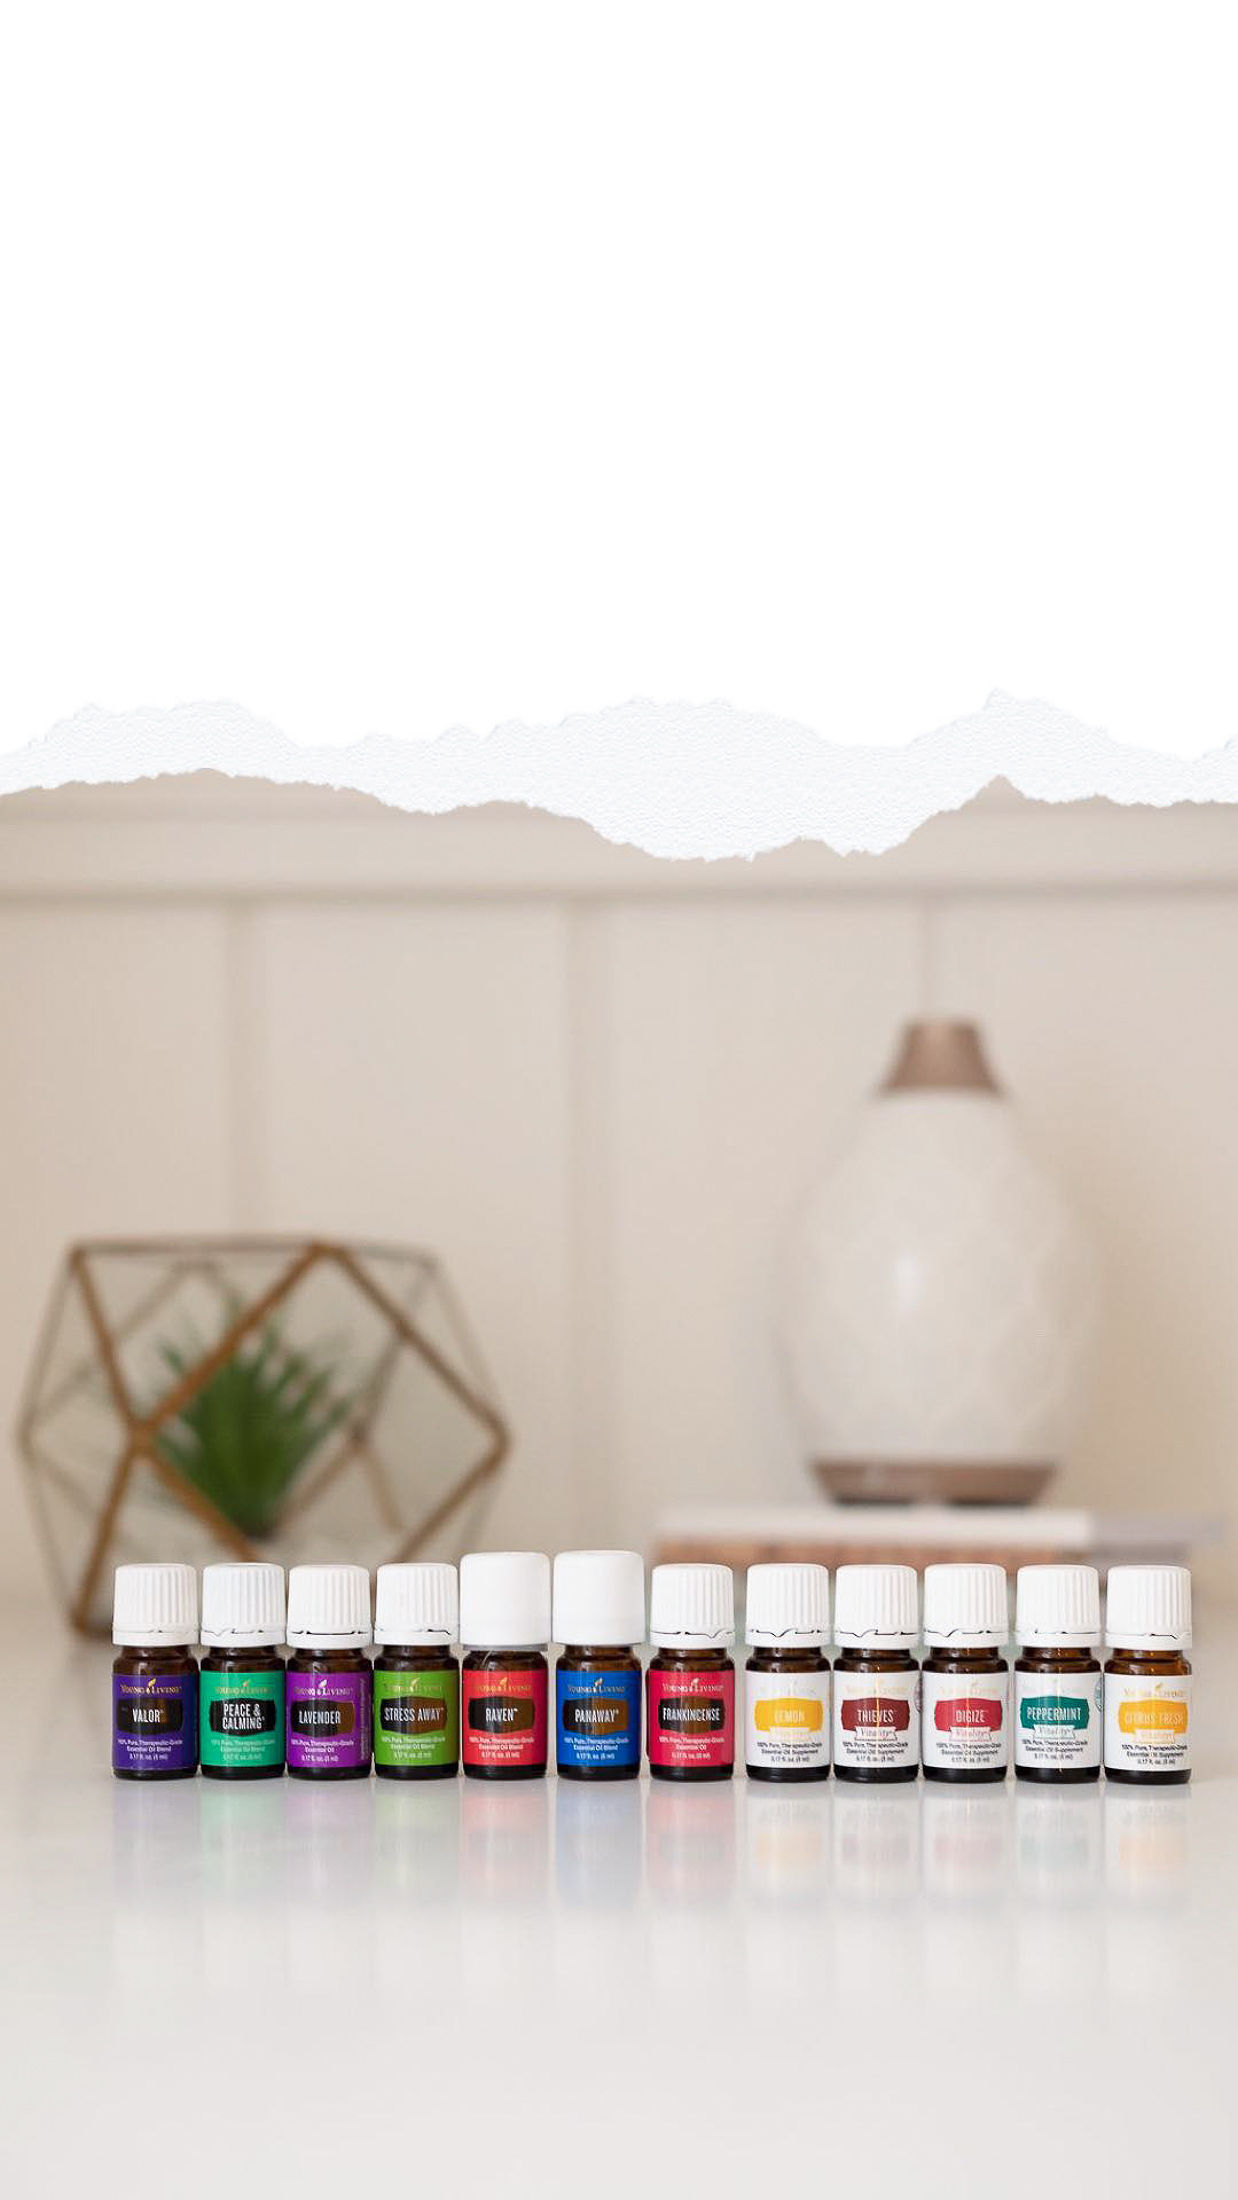 """Everything you need for cleaning, beauty & health and more is here!   What are Essential Oils and Why Do We Use Them?   Essential oils are oils made from flower, herb and tree parts (bark, roots, peels, petals). The cells that give a plant its fragrant smell is its """"essence"""". When the essence is extracted from a plant, it becomes an essential oil.  It takes a lot of plant product to make essential oils. More than 200 pounds of lavender flowers are used to make just one pound of lavender oil.  Not all products made with essence are essential oils. True essential oils are not blended with other chemicals or fragrances. They are made using a specific process that doesn't change the chemistry of the plant.  Essential Oils can support and release heavy emotions and feelings because of their connection to the limbic system in our brains (the area where memories and emotions are stored).   Why Young Living Essential Oils?   Not all oils are created equal. Young Living offers only pure, therapeutic grade, non-GMO essential oils, steam distilled in their own facilities, from their own farms. For 25 years, Young Living's Seed to Seal® quality commitment has been both a promise to you and a reflection of their sense of global stewardship and accountability. They believe we want only the best for our family and ourselves—products that are genuine, free from harmful synthetics, and of unmatched purity. Their proprietary Seed to Seal promise is their pledge to us, the earth, and themselves that Young Living products will be the best available, now and always.  Seed to Seal and its three pillars—Sourcing, Science, and Standards—are infused into every aspect of Young Living's exacting essential oil production processes, both on their own farms and their carefully curated family of partner farms. Seed to Seal is infused into their painstaking quality testing and retesting to ensure that our families enjoy the purest essential oil products on the planet. Ultimately, Seed to Seal is i"""